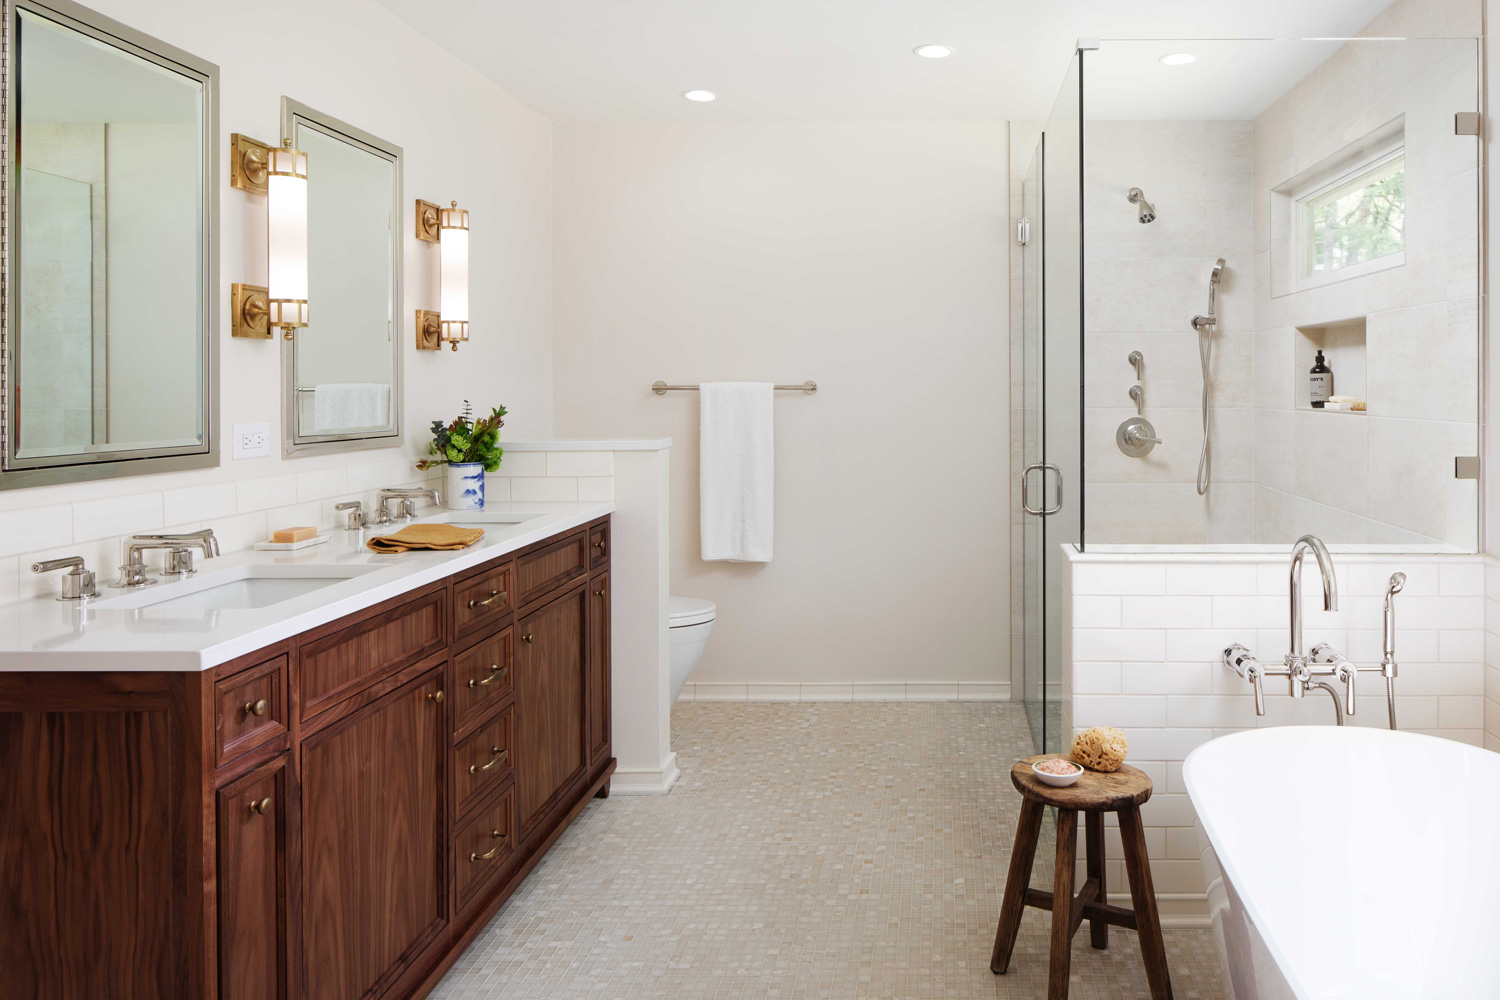 Bathroom interior design by Jenni Leasia Interior Design in Portland